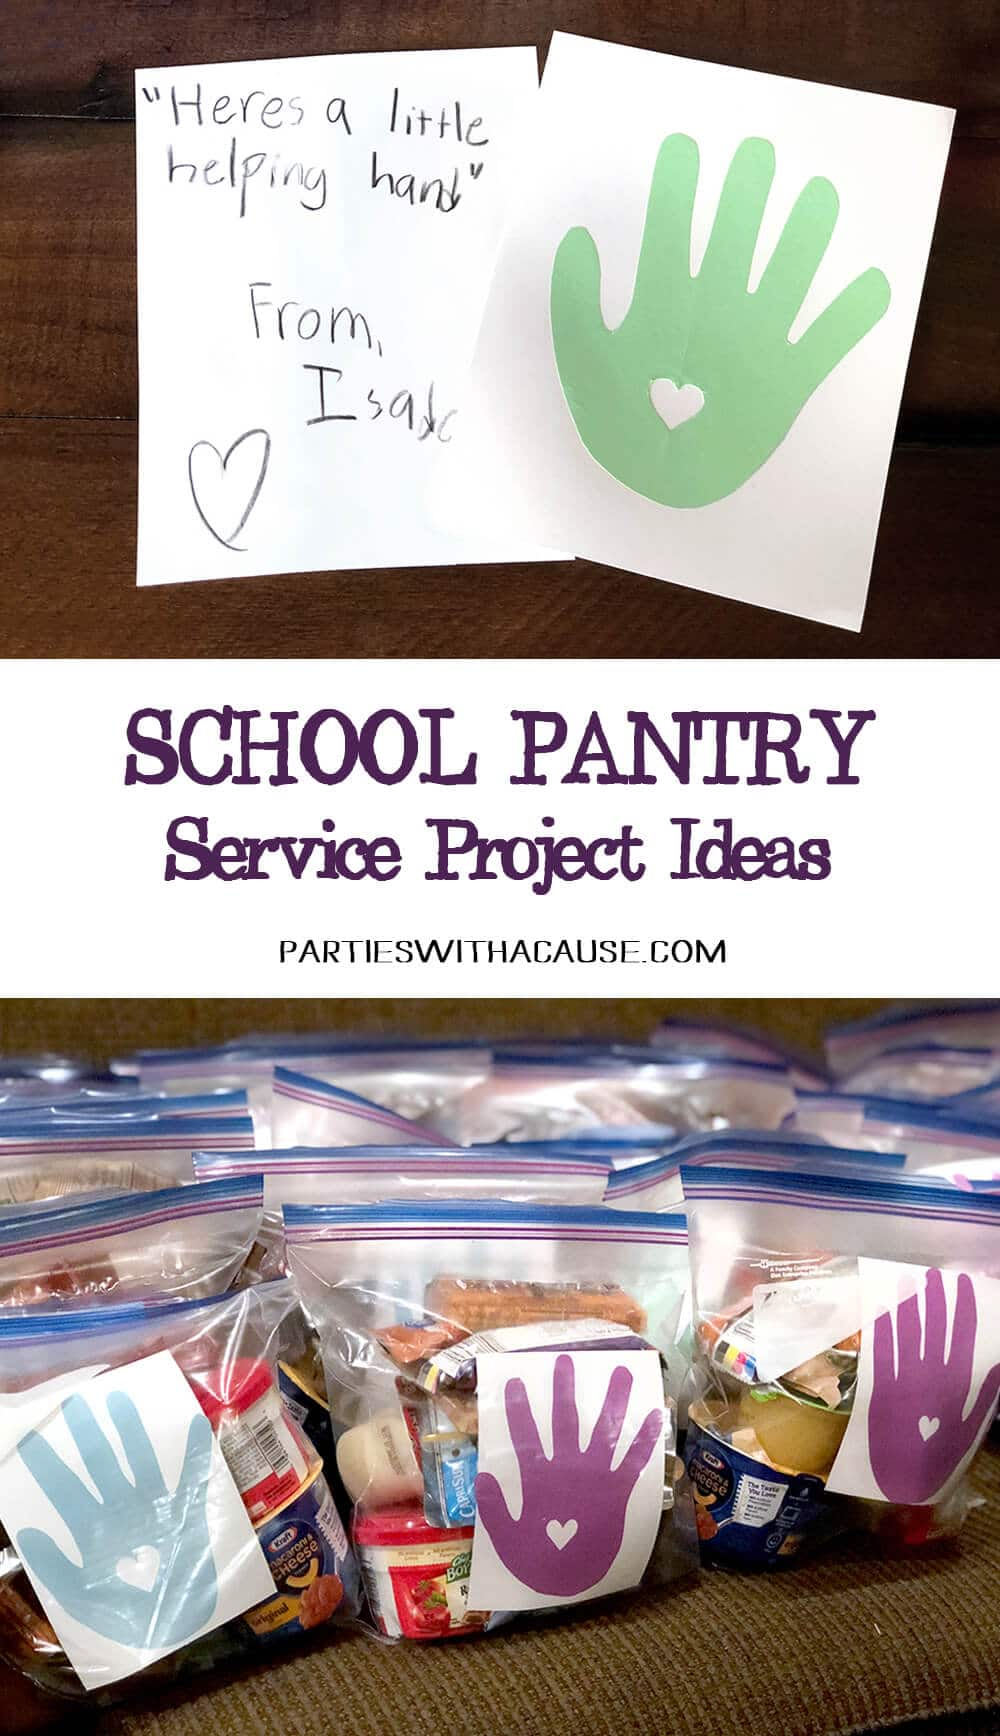 School food pantry service project